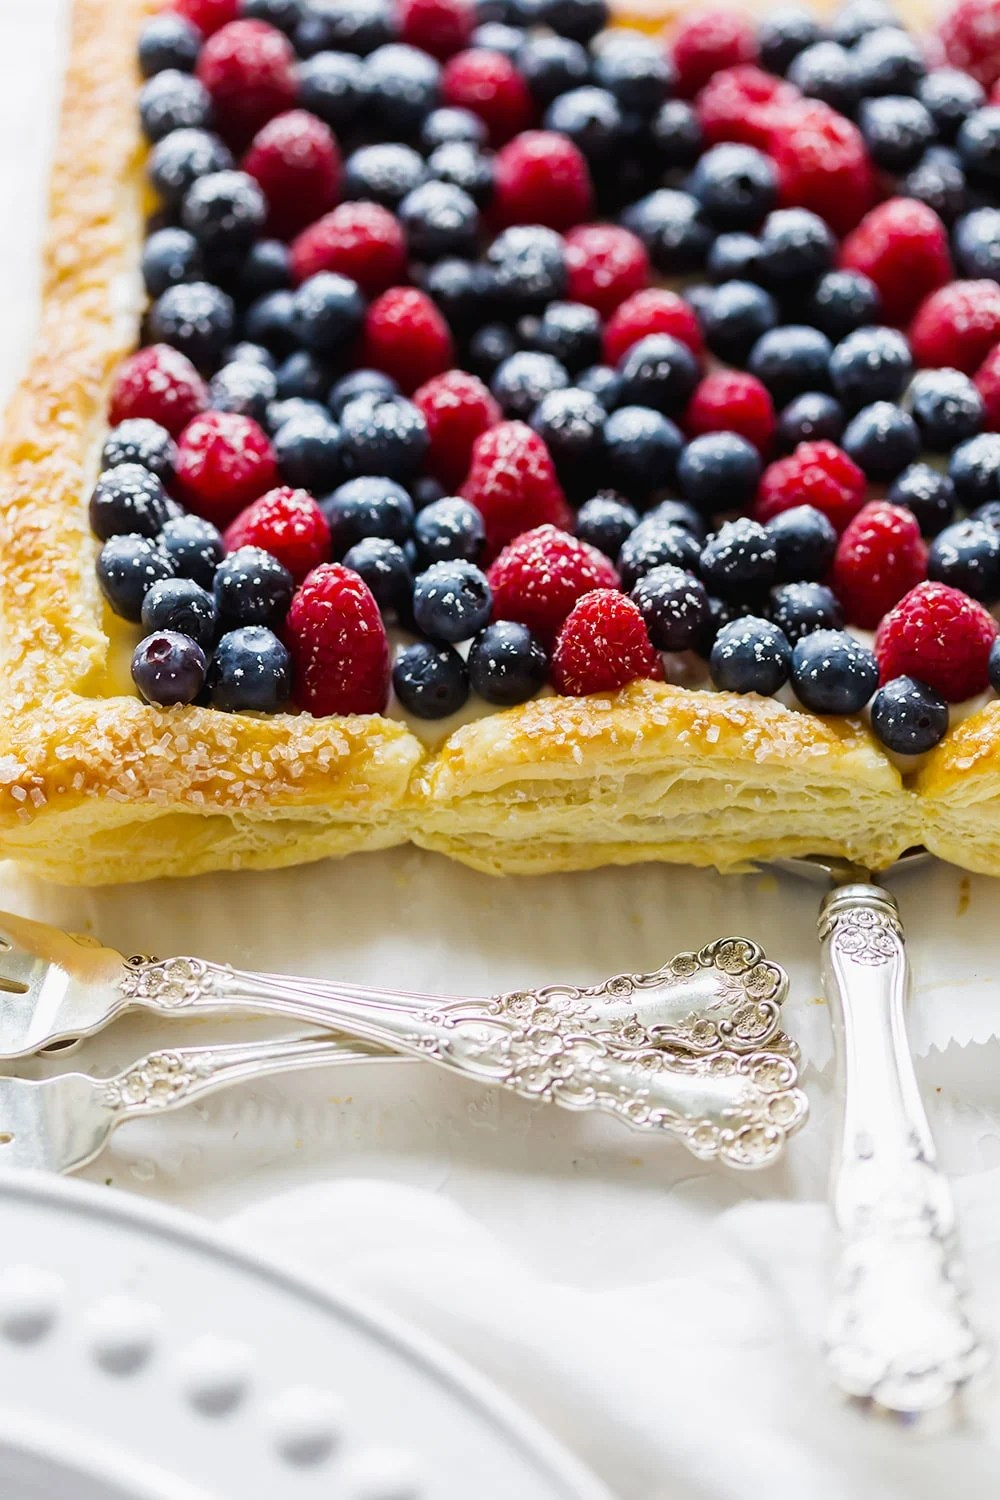 Red White and Blueberry Tart for the 4th